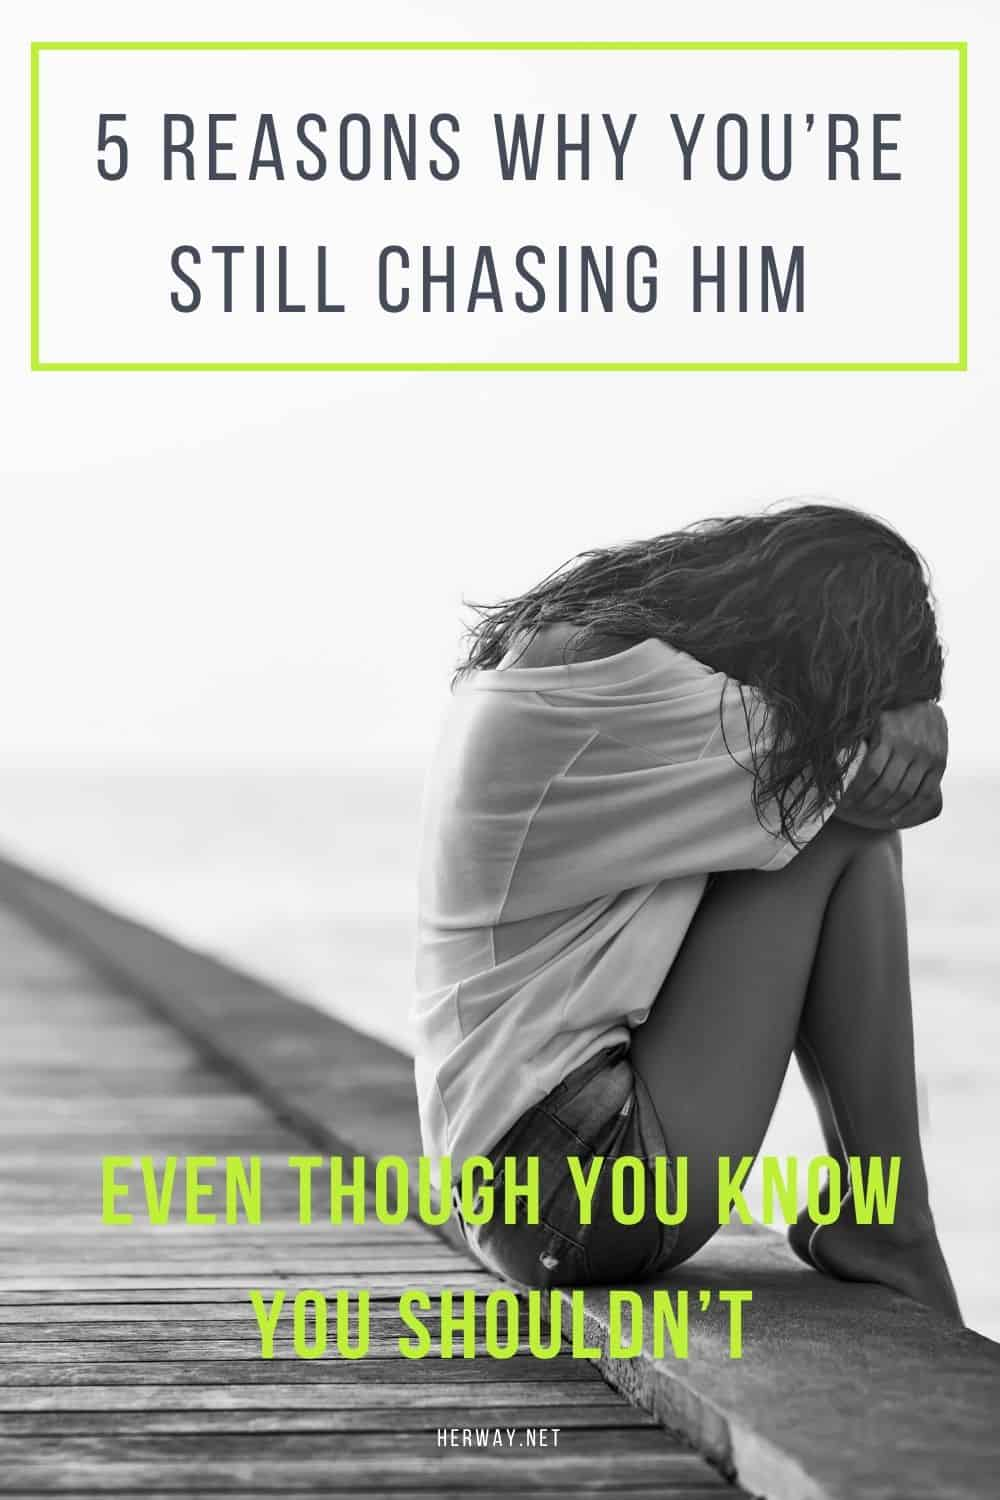 5 Reasons Why You're Still Chasing Him Even Though You Know You Shouldn't